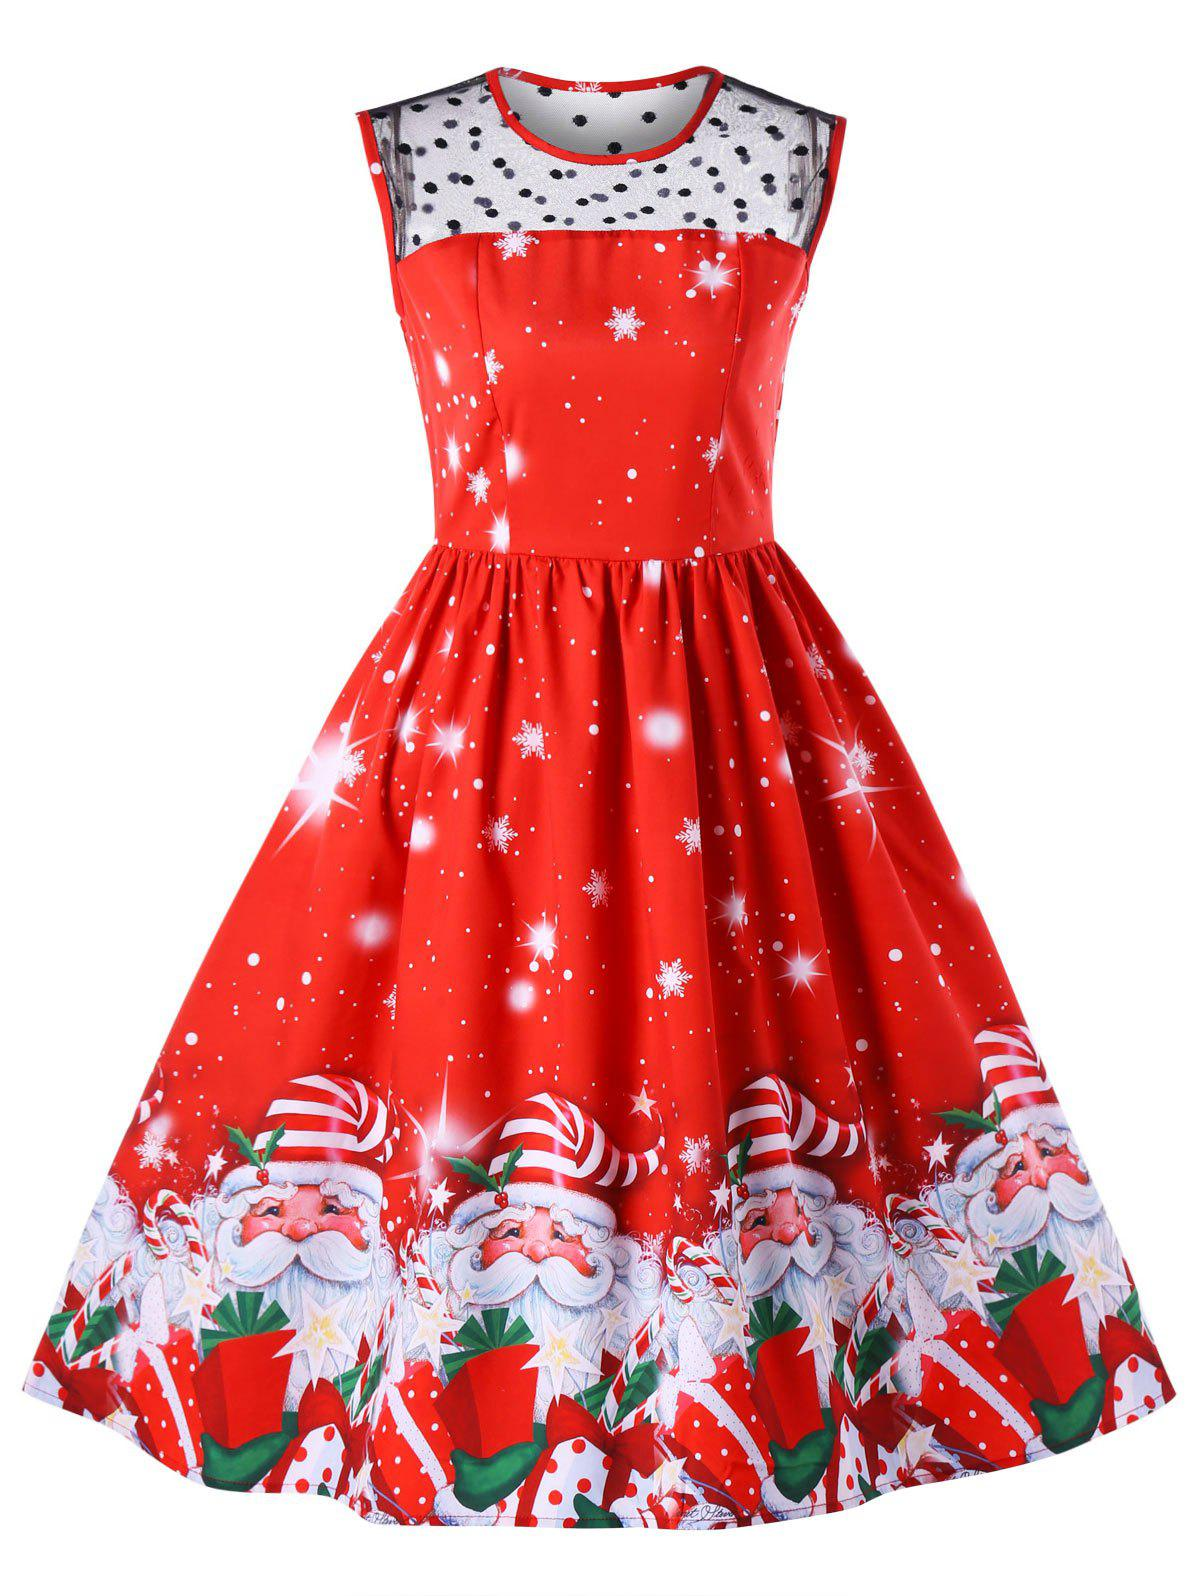 Christmas Mesh Insert Santa Claus Print DressWOMEN<br><br>Size: XL; Color: RED; Style: Vintage; Material: Polyester; Silhouette: Fit and Flare; Dresses Length: Mid-Calf; Neckline: Round Collar; Sleeve Length: Sleeveless; Pattern Type: Character; With Belt: No; Season: Fall,Spring; Weight: 0.5100kg; Package Contents: 1 x Dress;